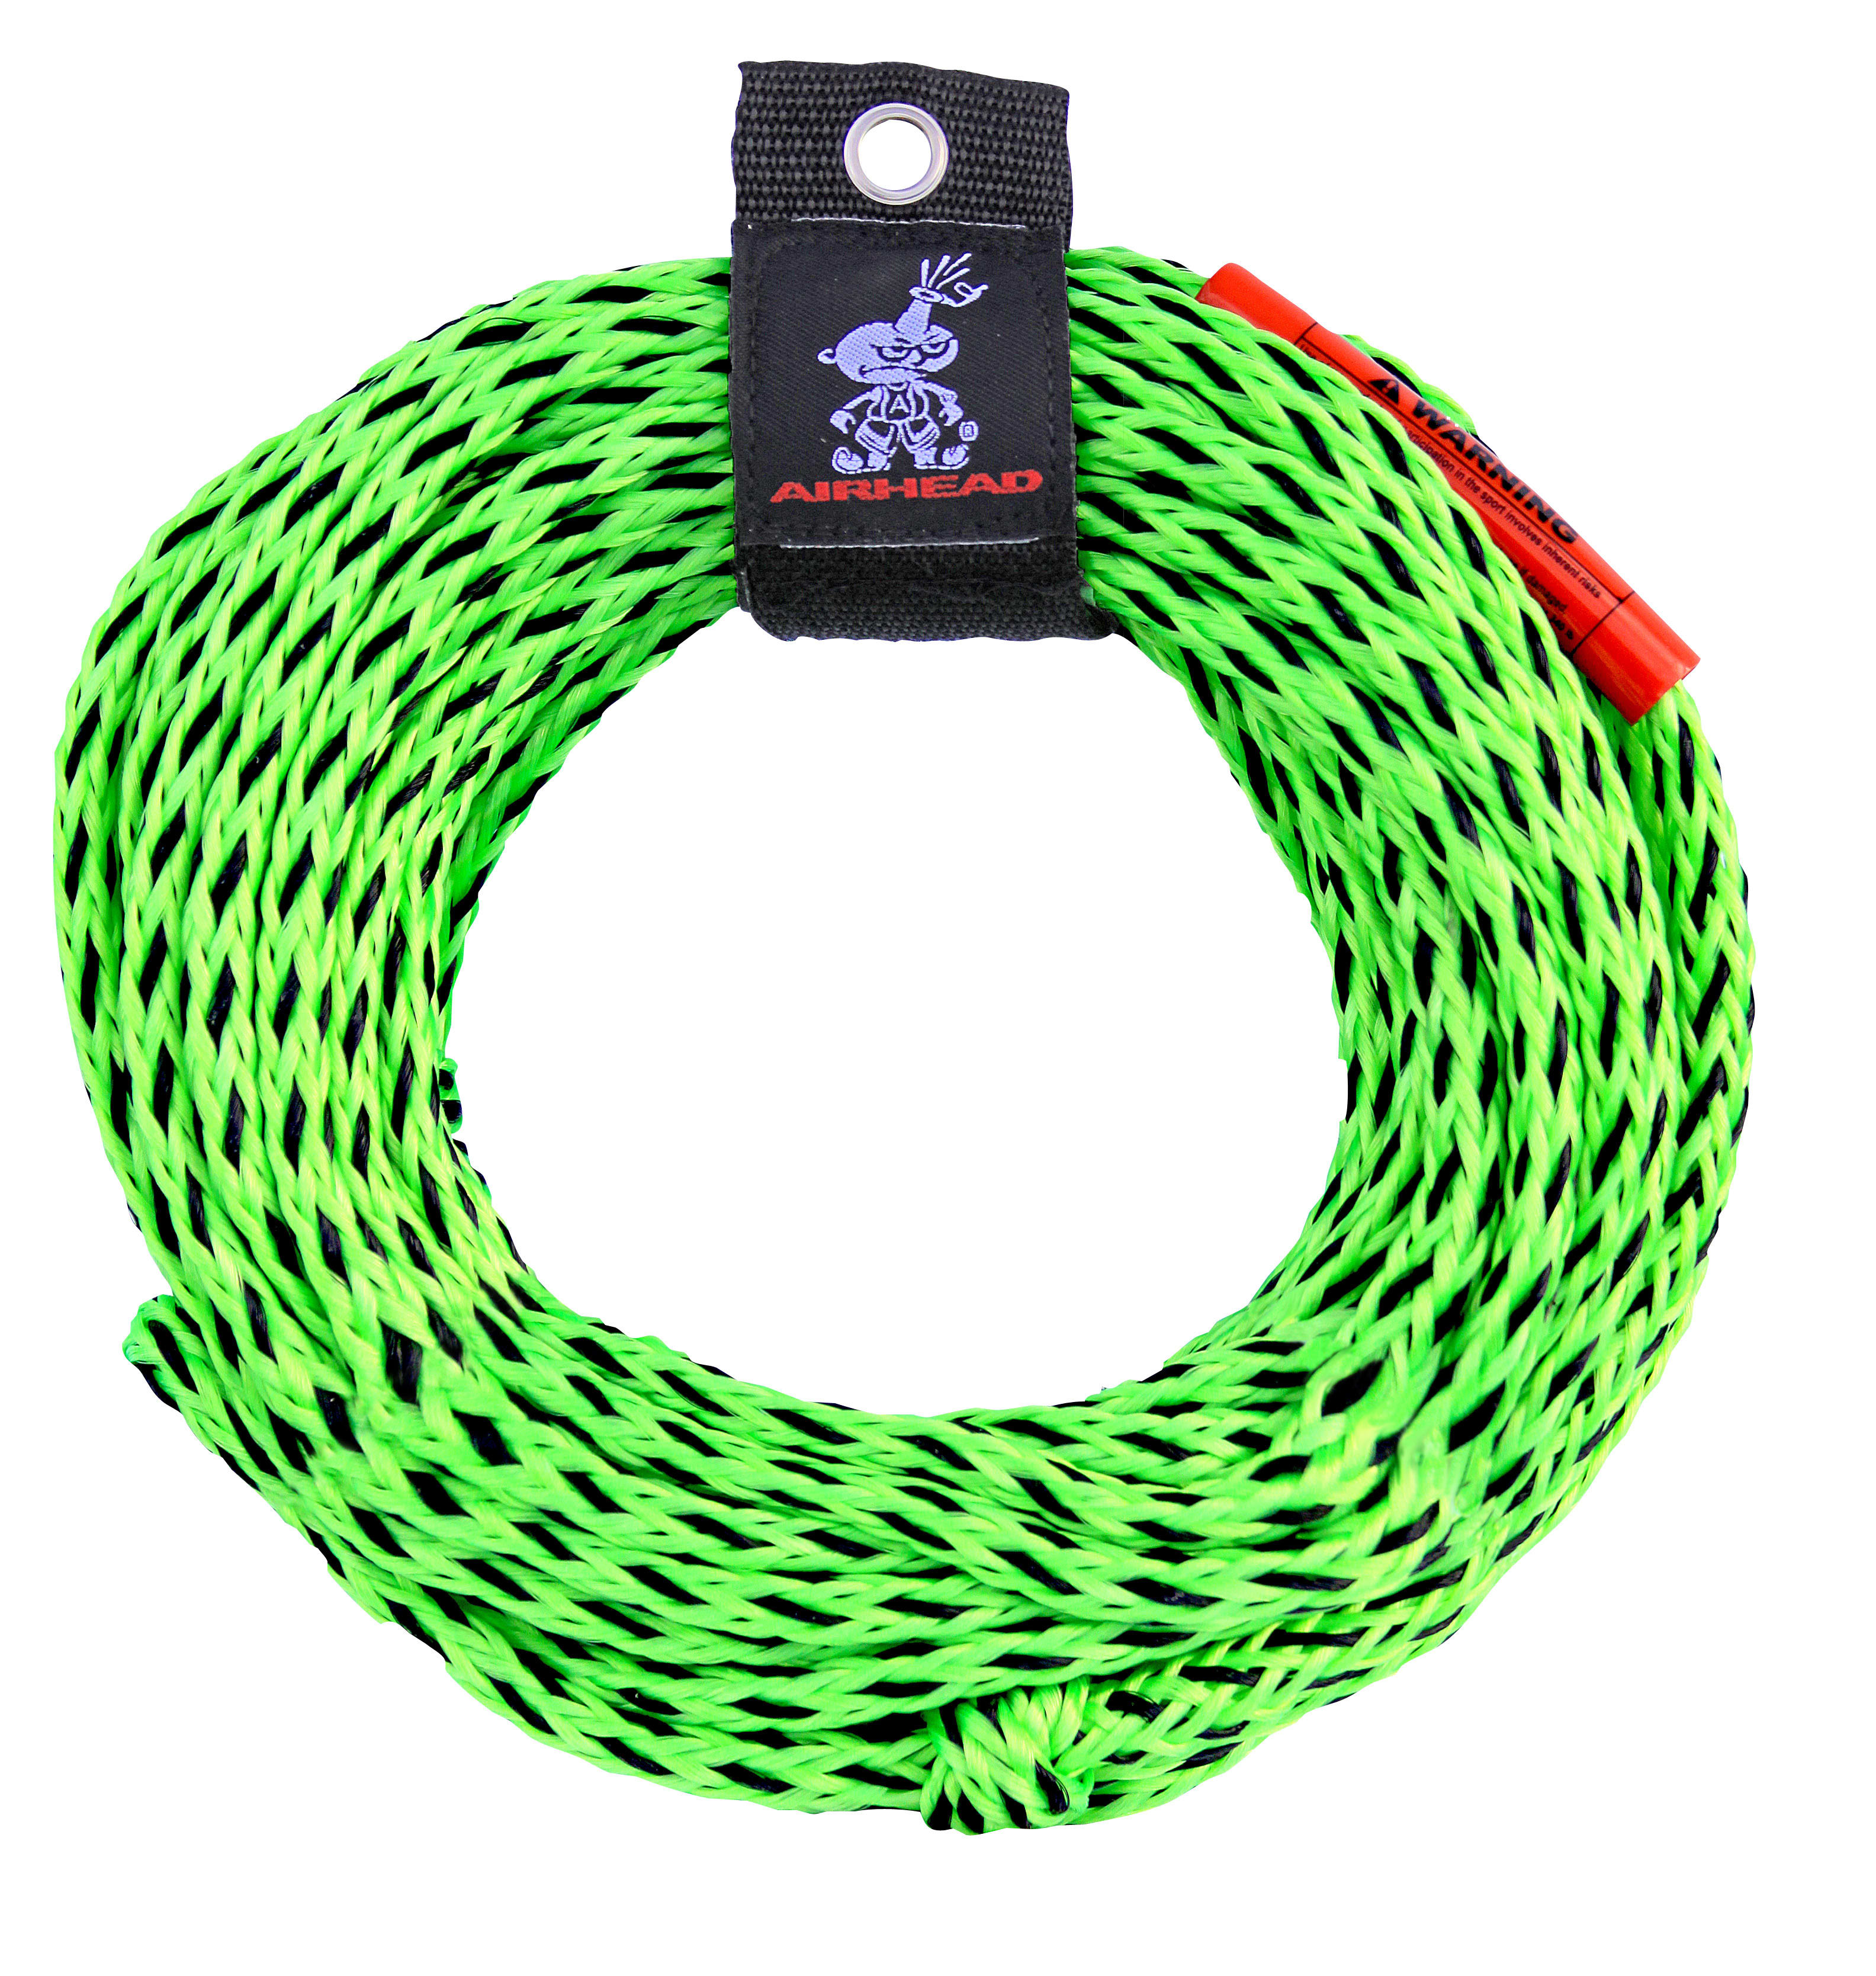 Airhead 2 Rider Tube Rope aa2rdtr15zz-airhead-tow-ropes